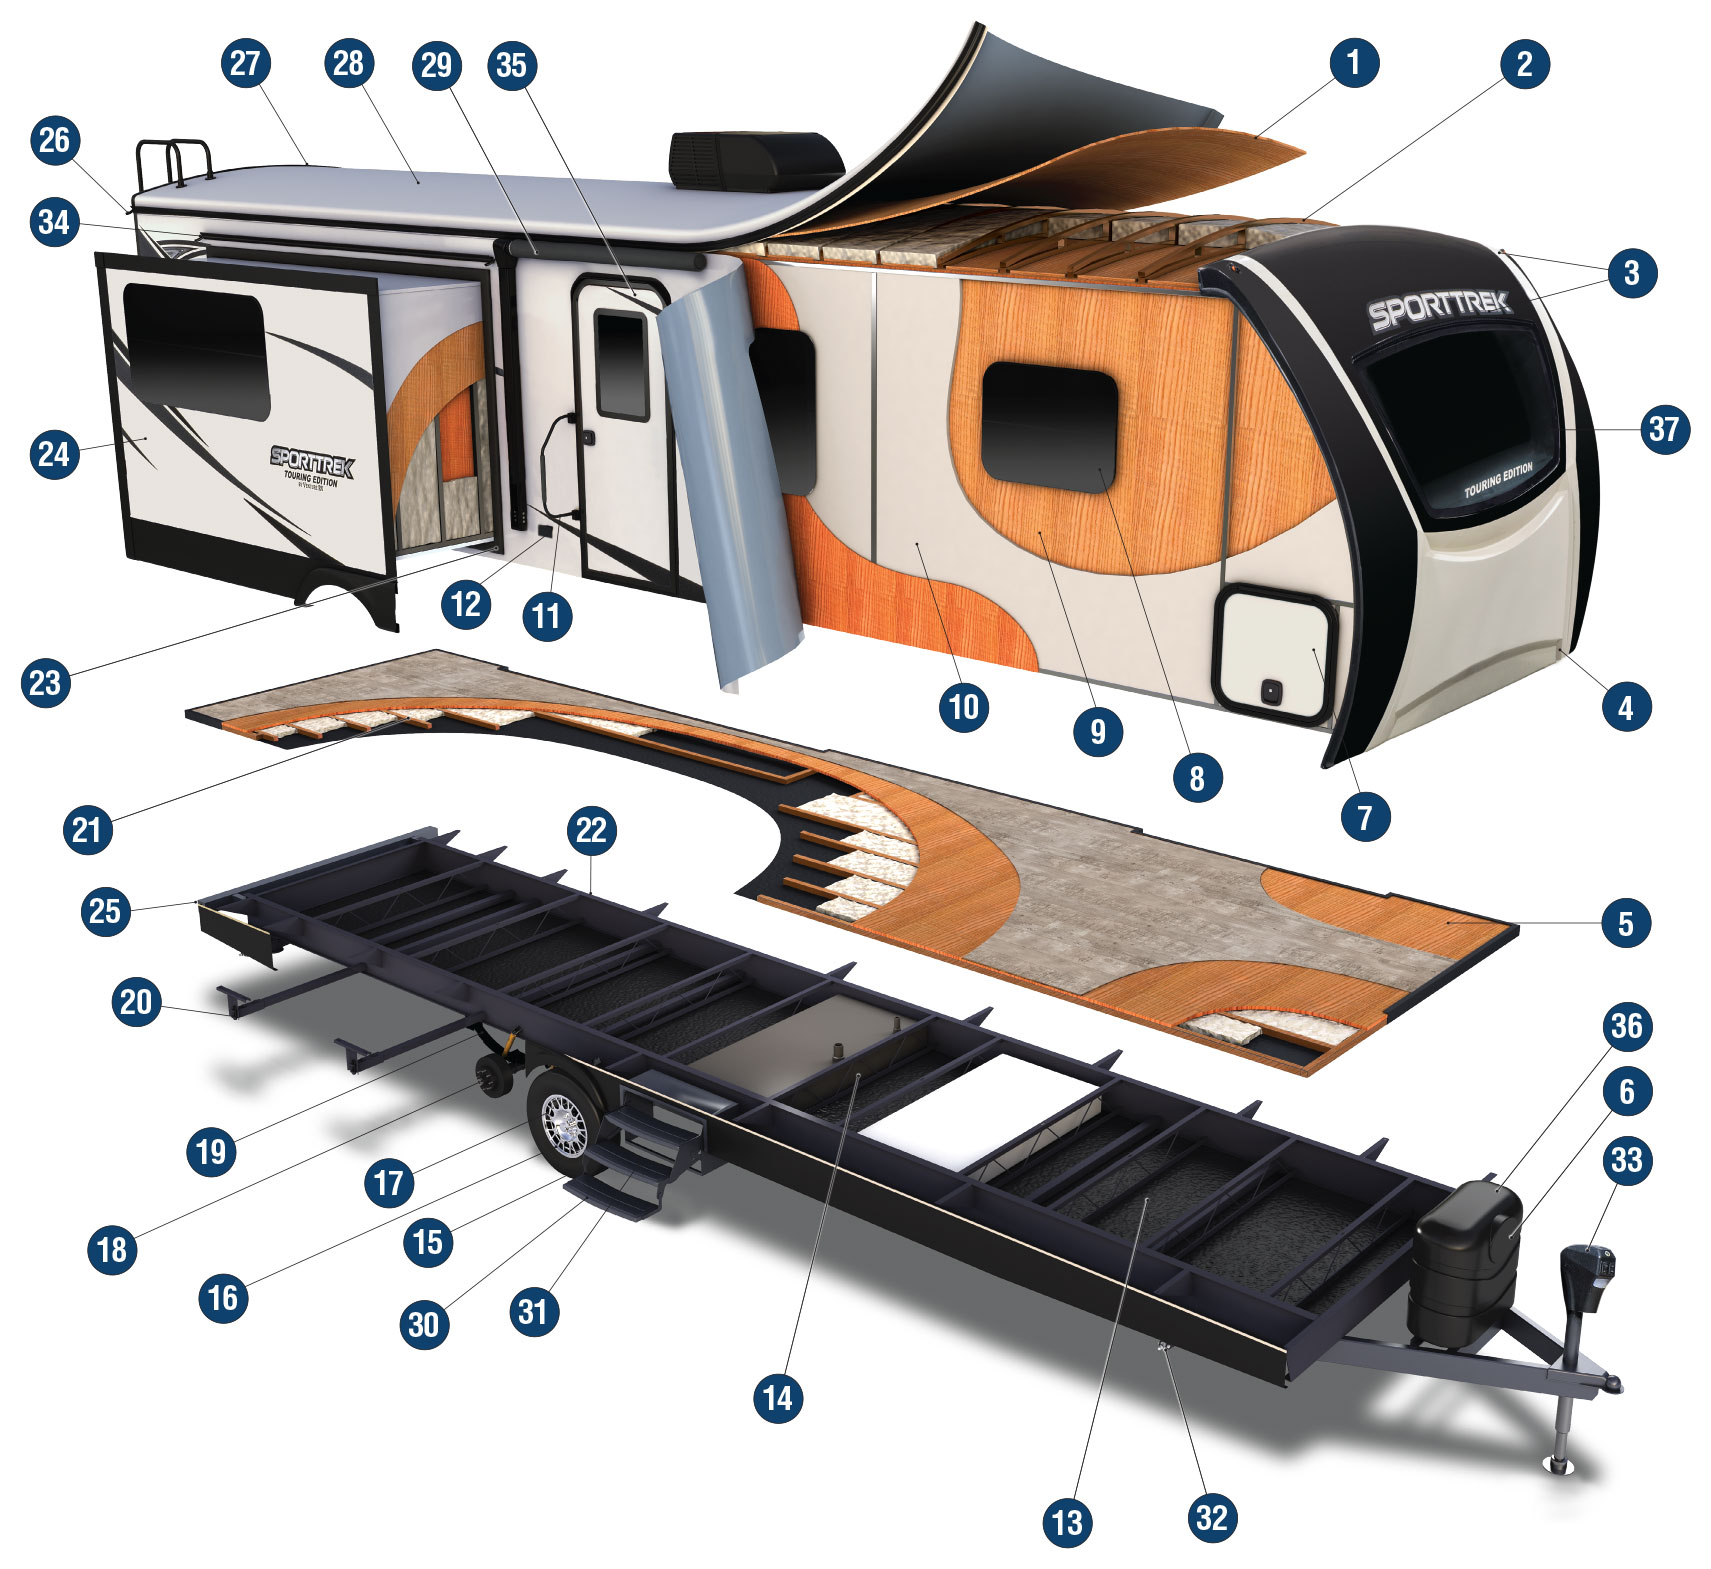 2018 Venture RV SportTrek Touring Edtion Travel Trailer Construction